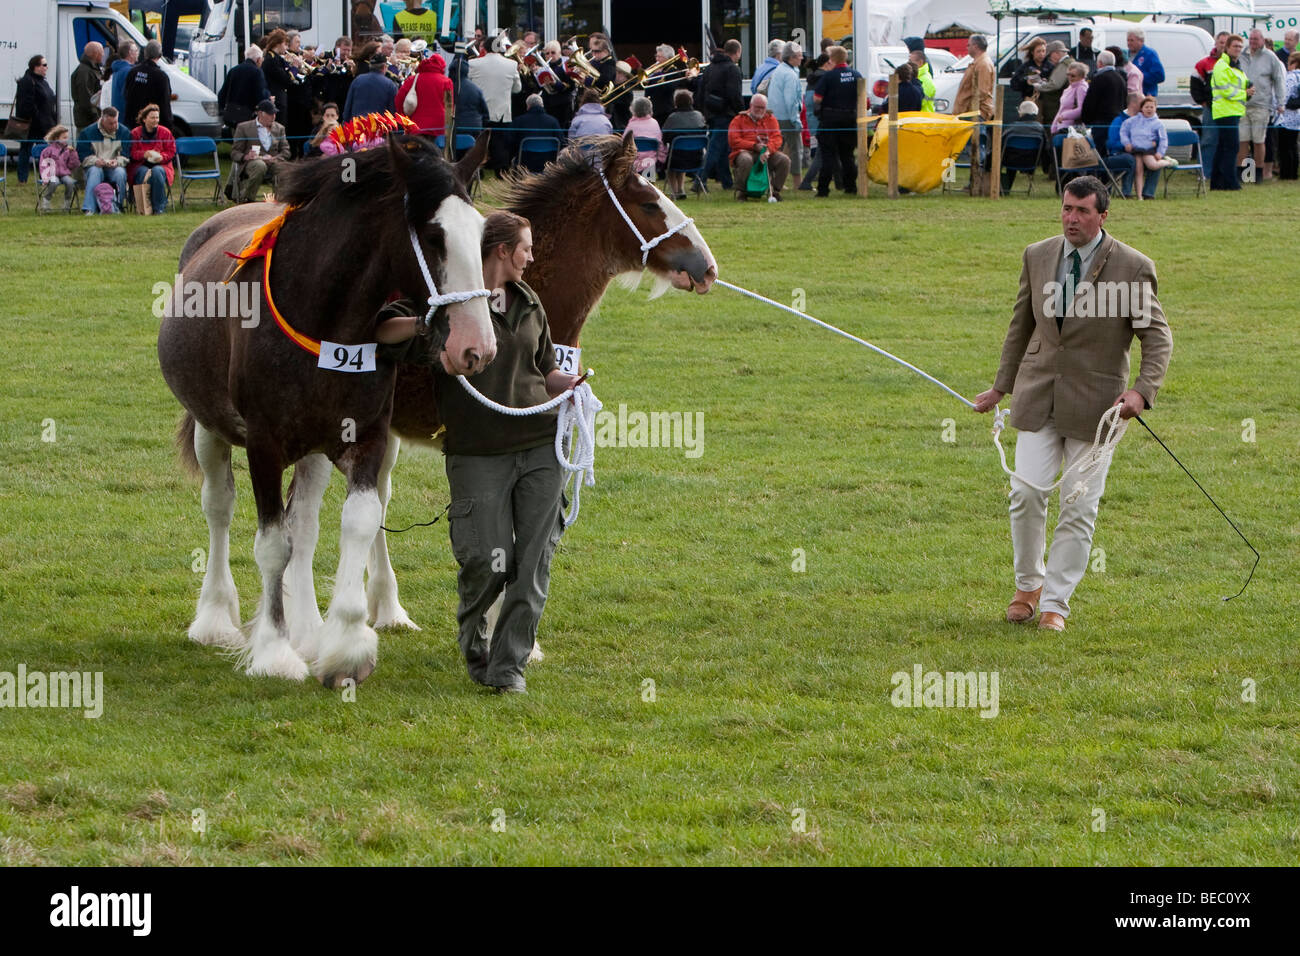 Cart Horses, Wensleydale Agrcultural Show held early September near Leyburn, North Yorkshire - Stock Image